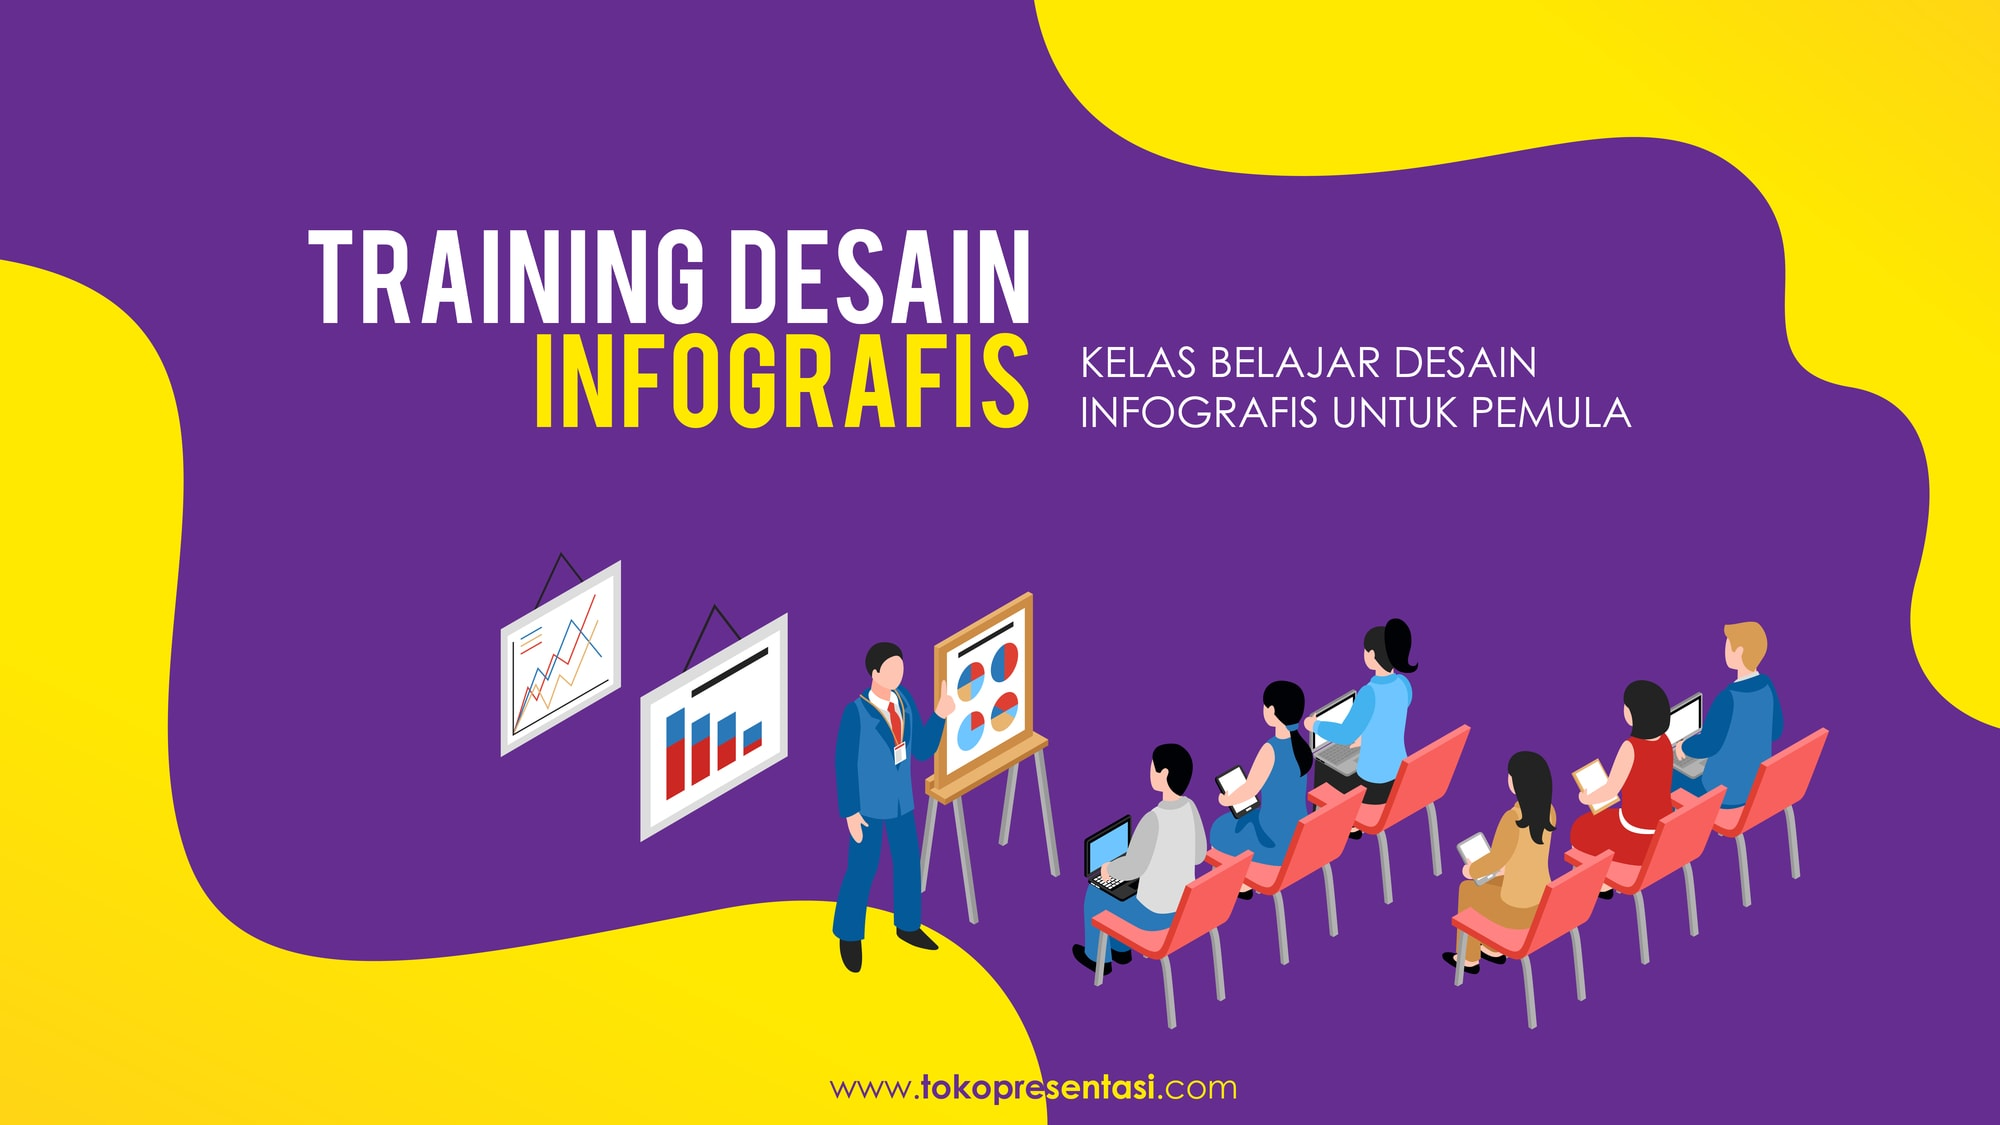 Pelatihan Training Desain Infografis PPT Corporate University Trakindo Utama Tokopresentasi